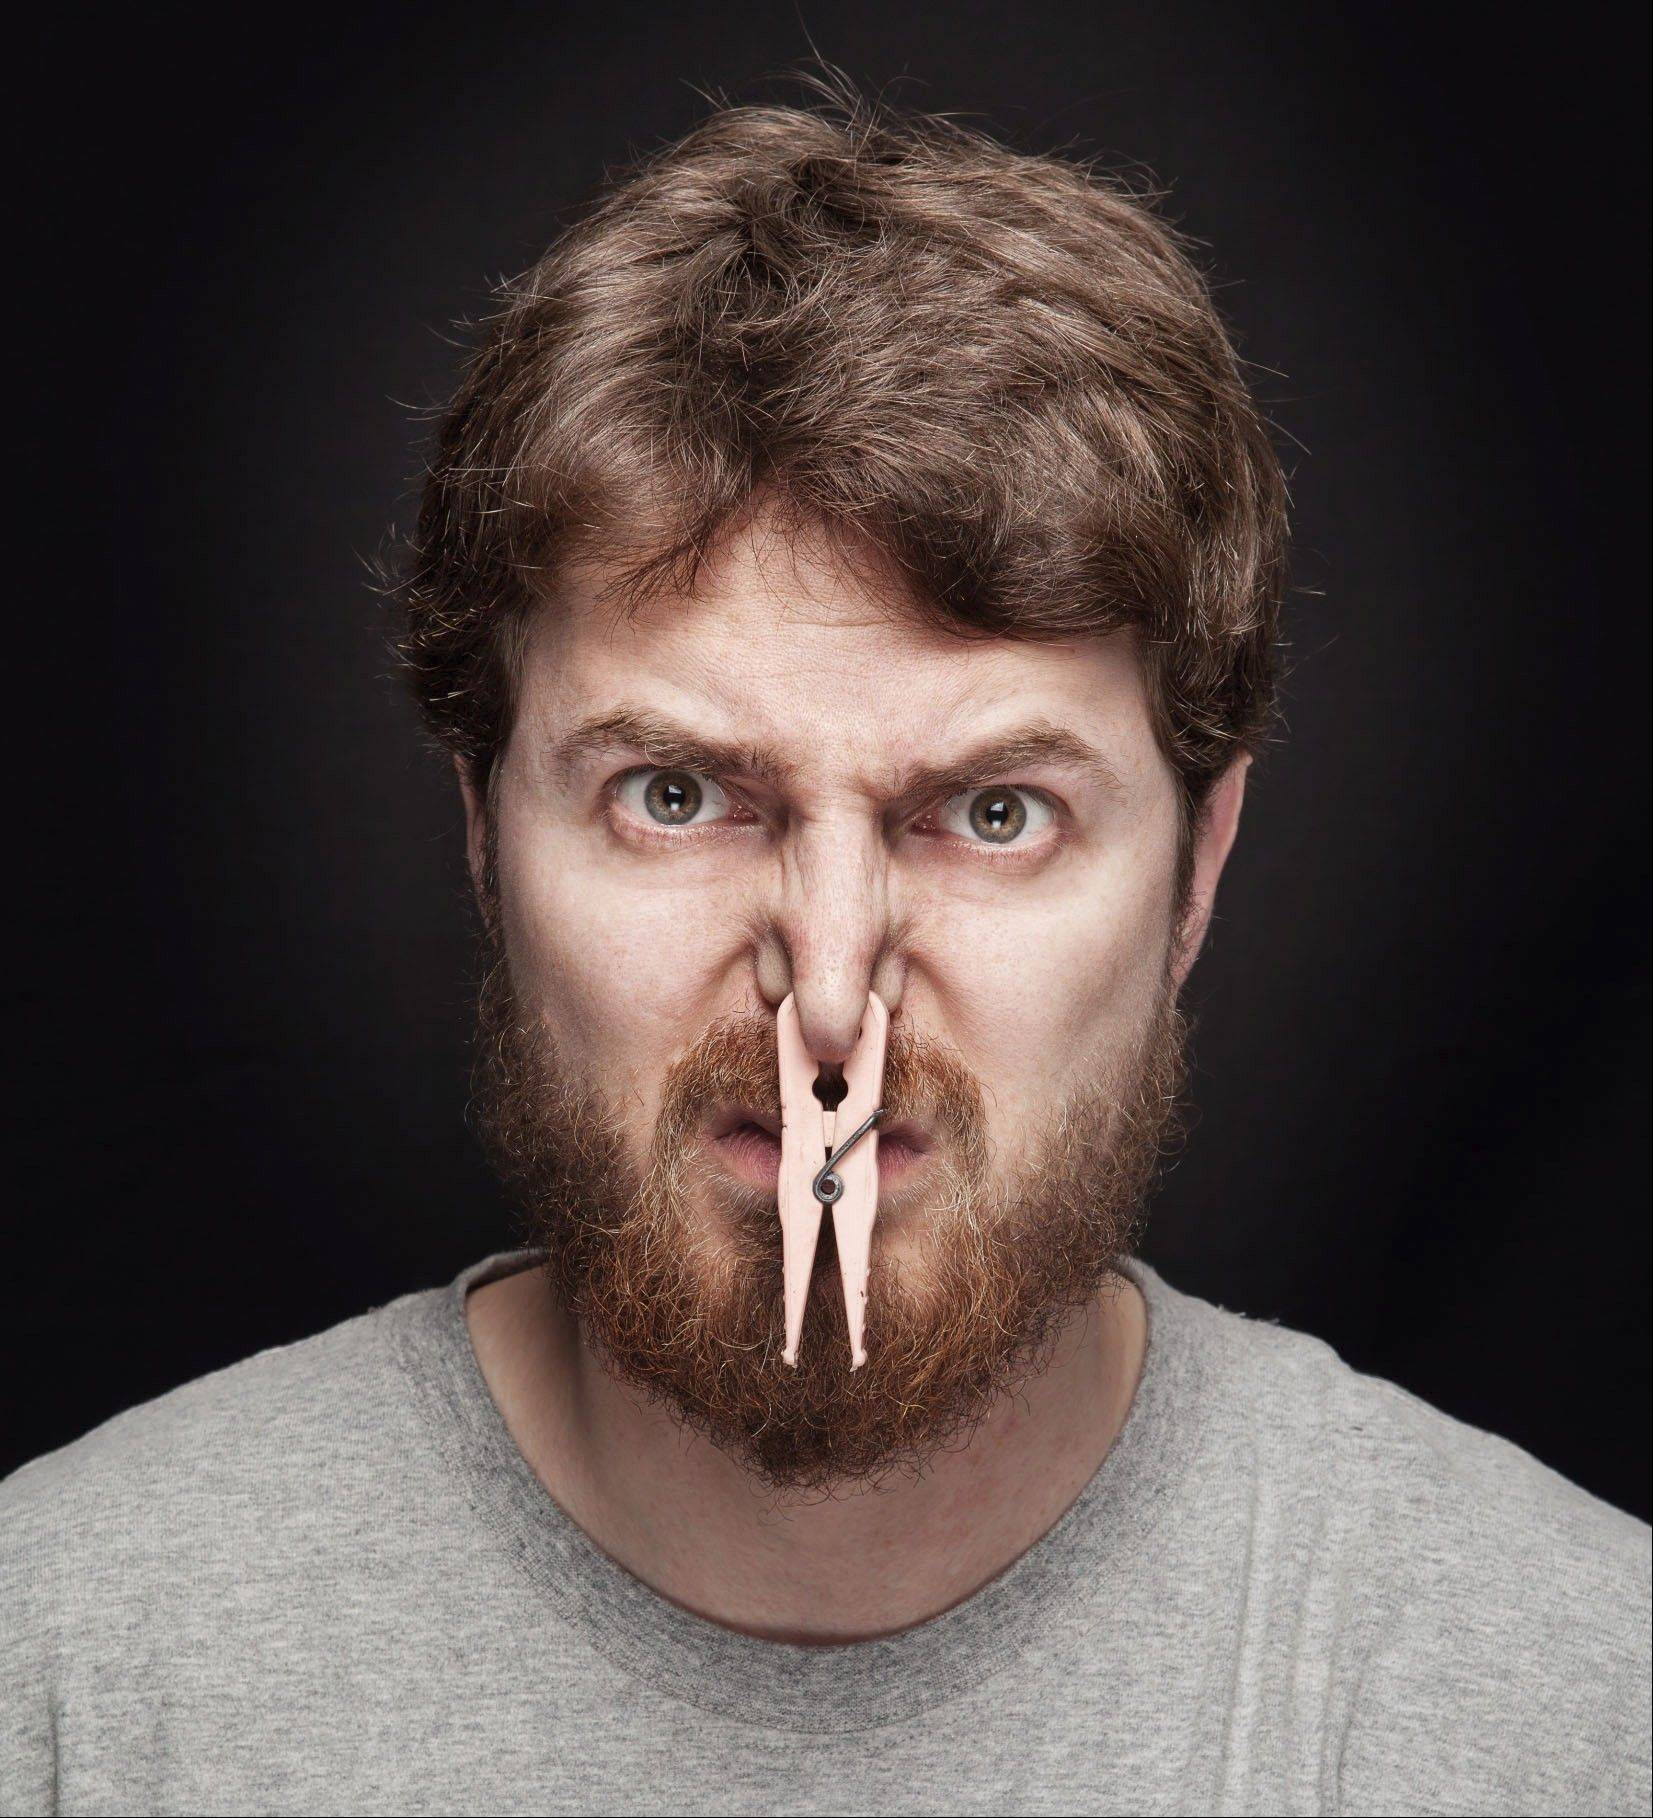 People react differently to strong smells.